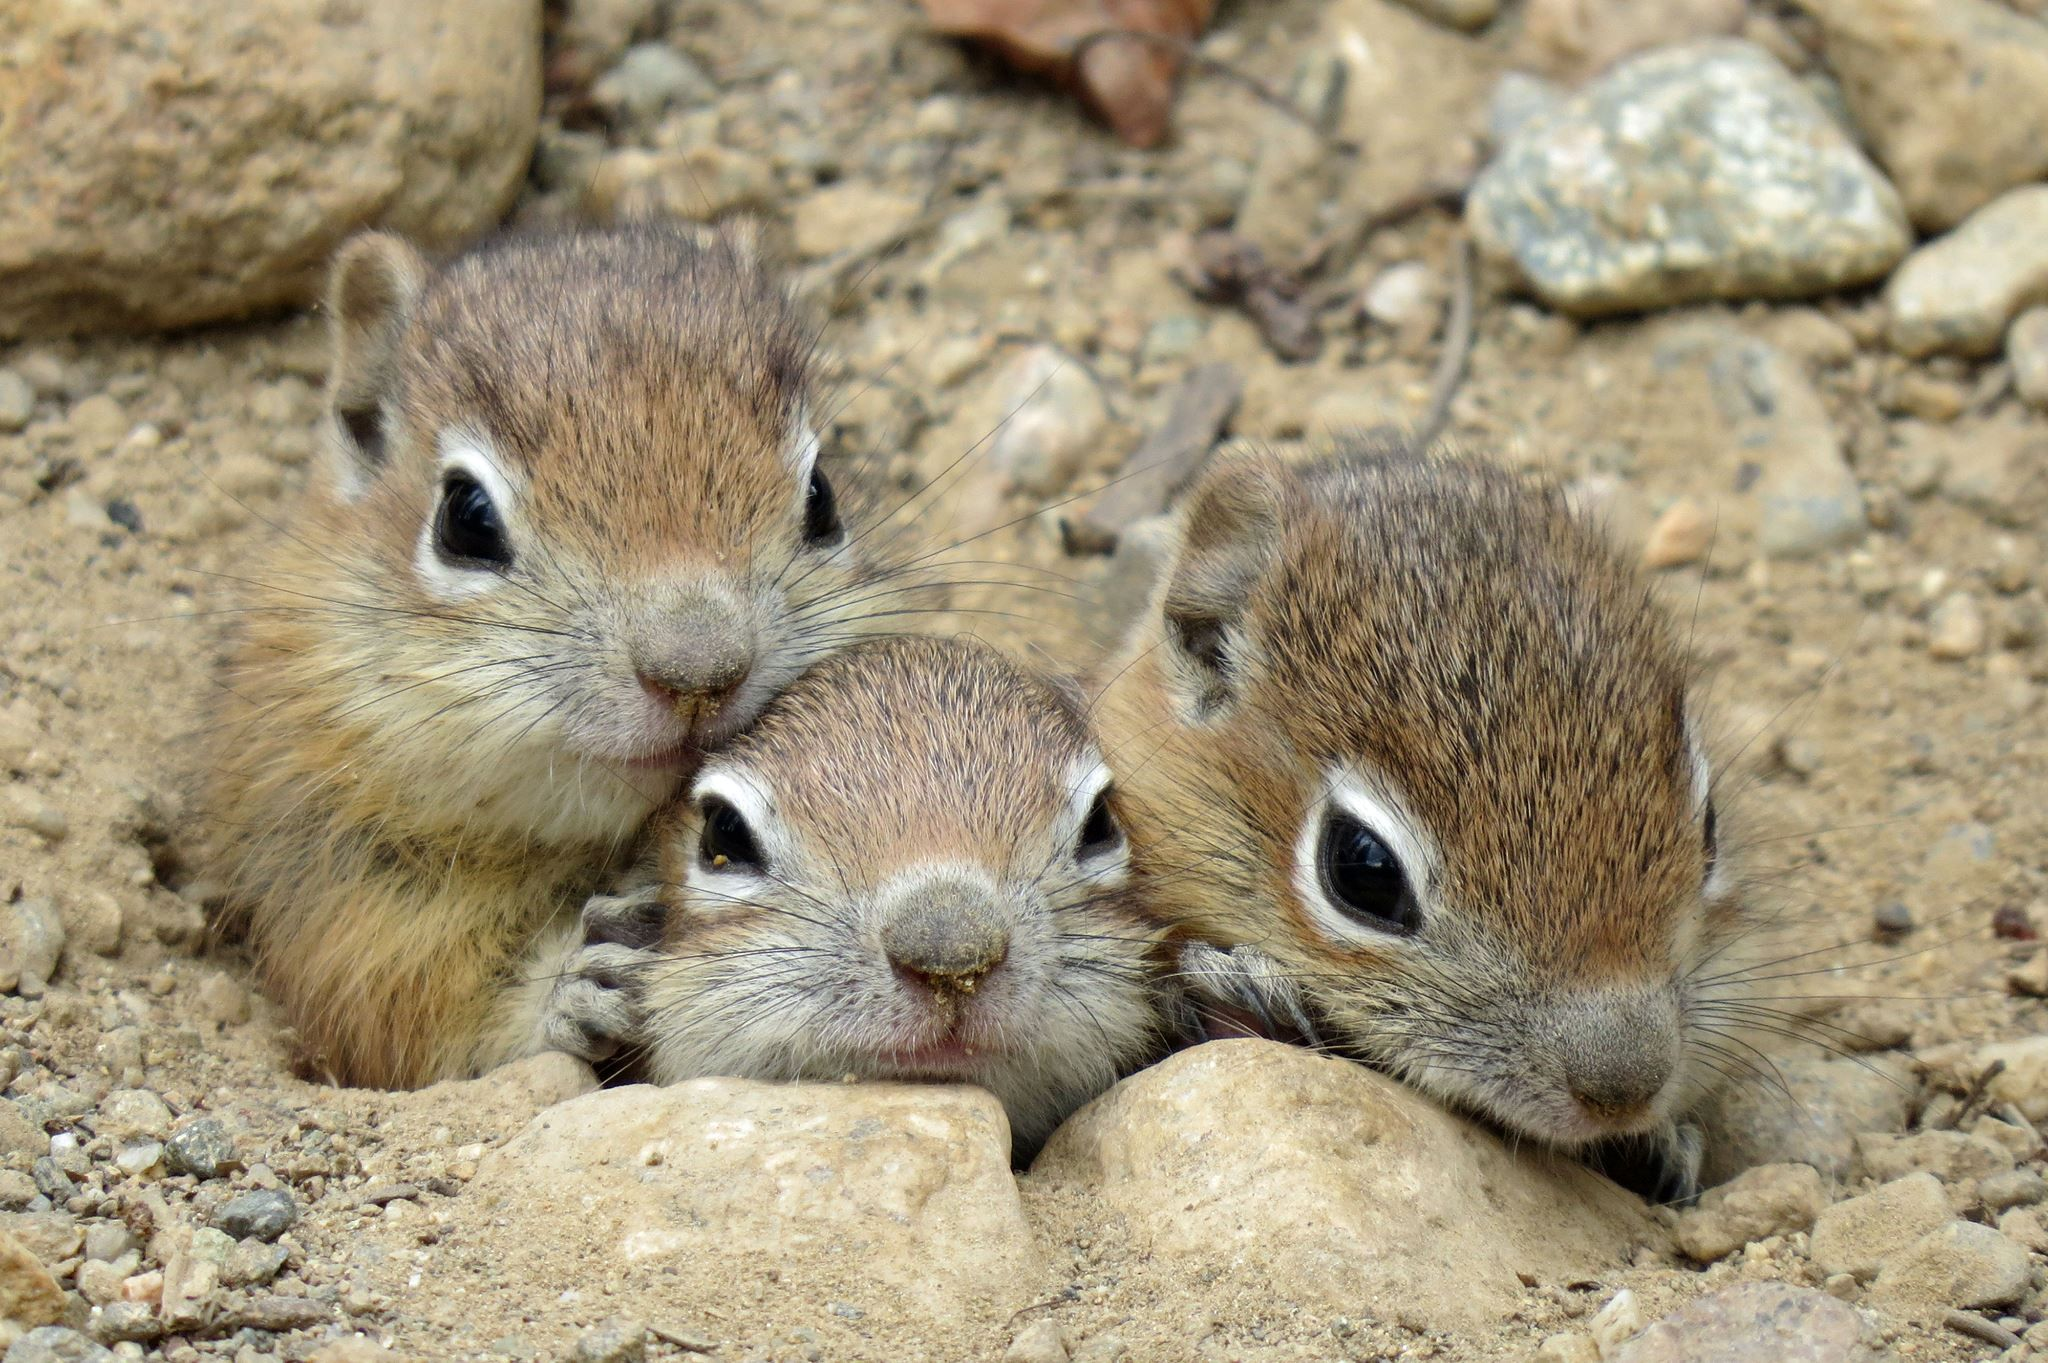 rocky mountain national park ground squirrels. fb